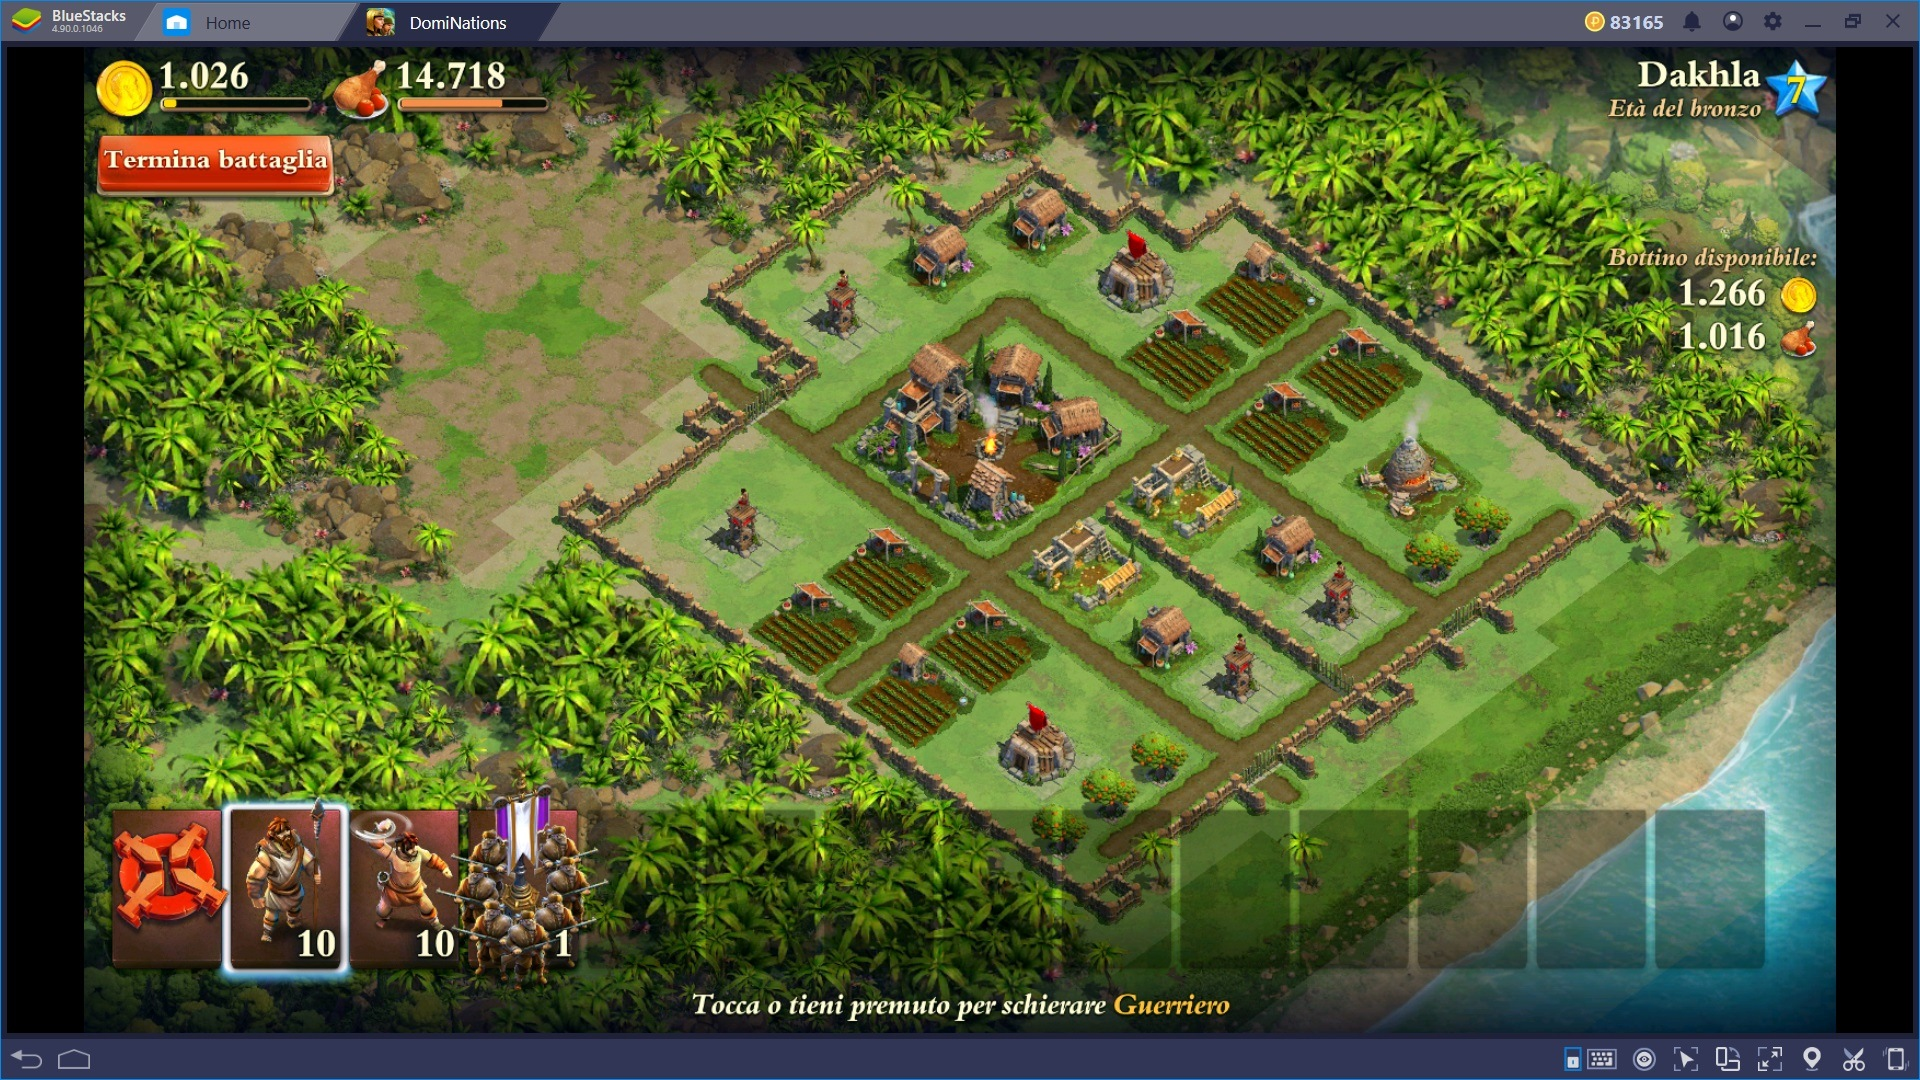 Come Attaccare e Difendere in DomiNations